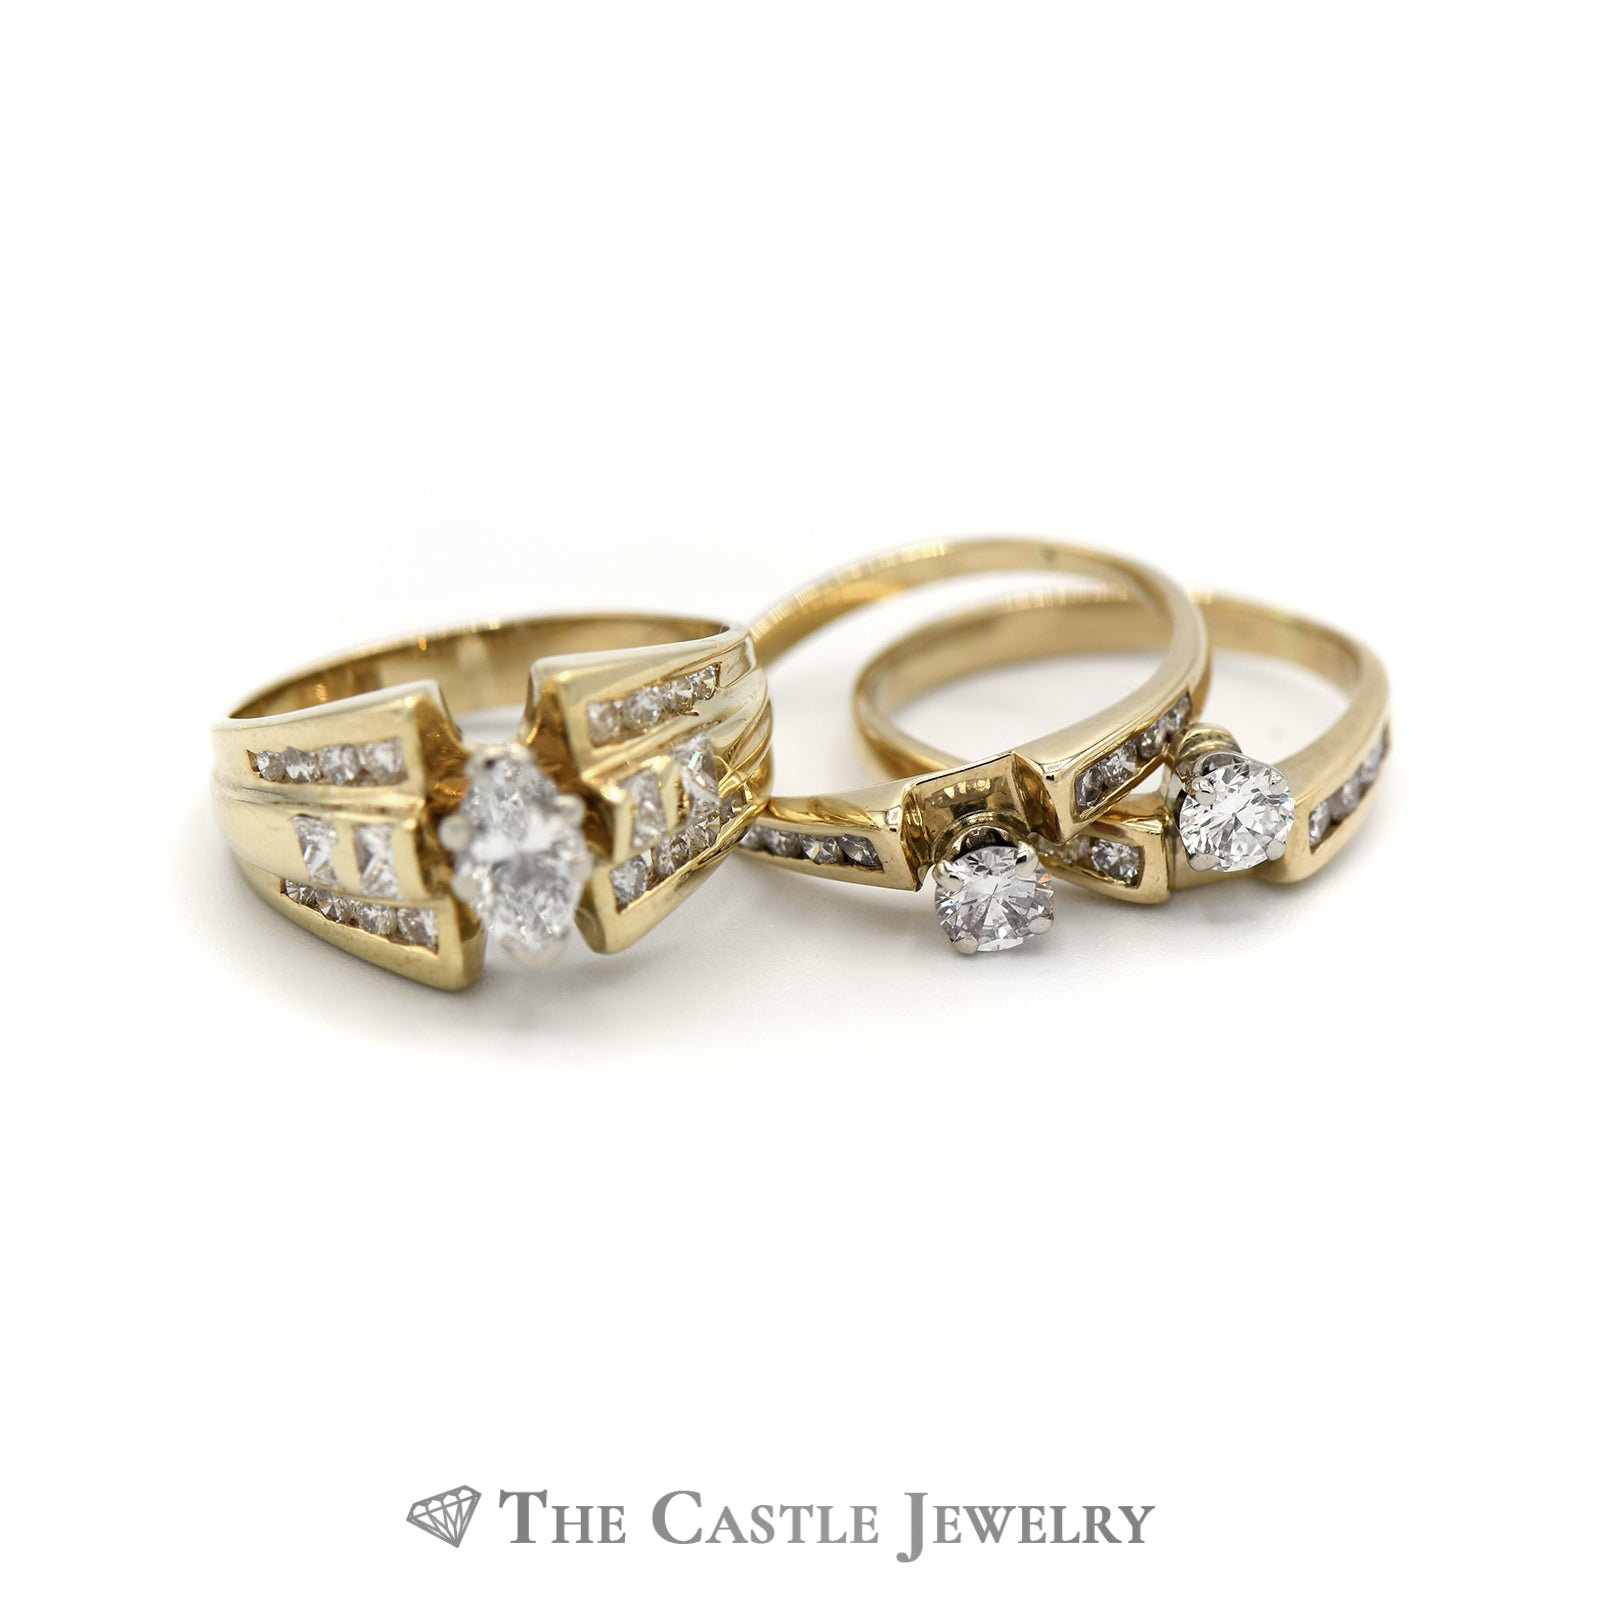 Unique 2cttw Diamond Bridal Set Crafted in 14K Yellow Gold-3